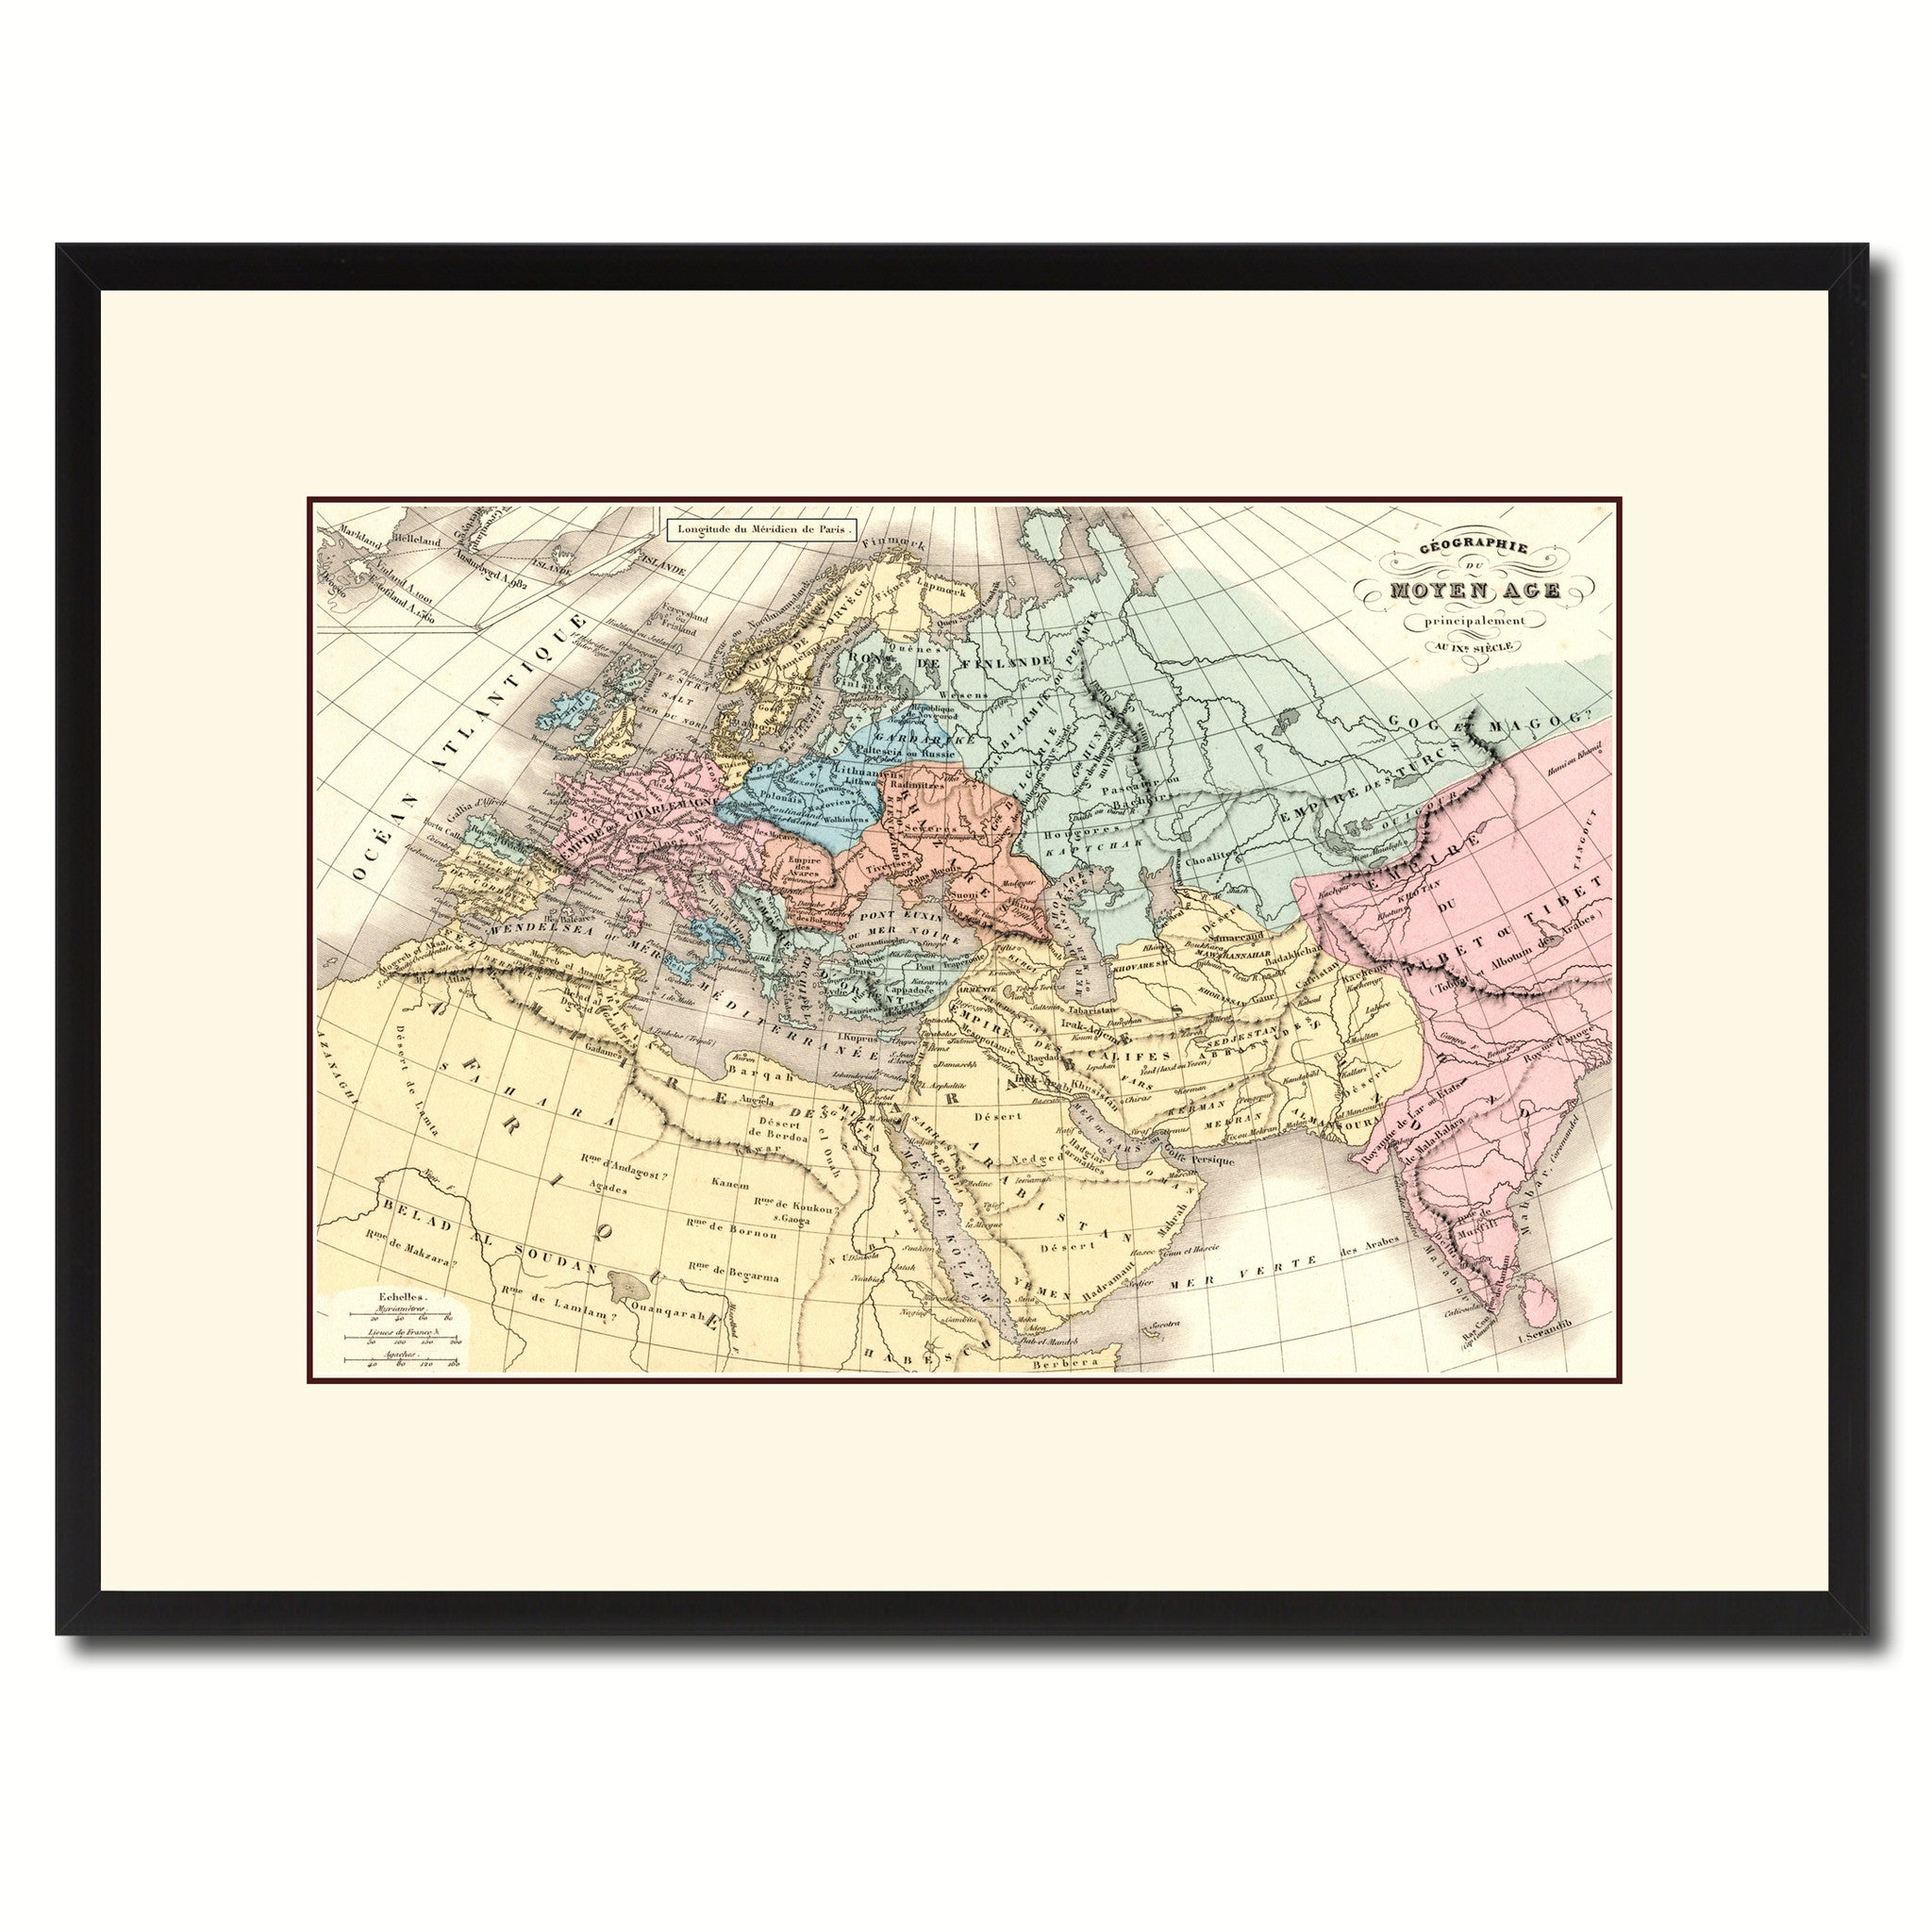 Europe In The Middle Ages Crusades Vintage Antique Map